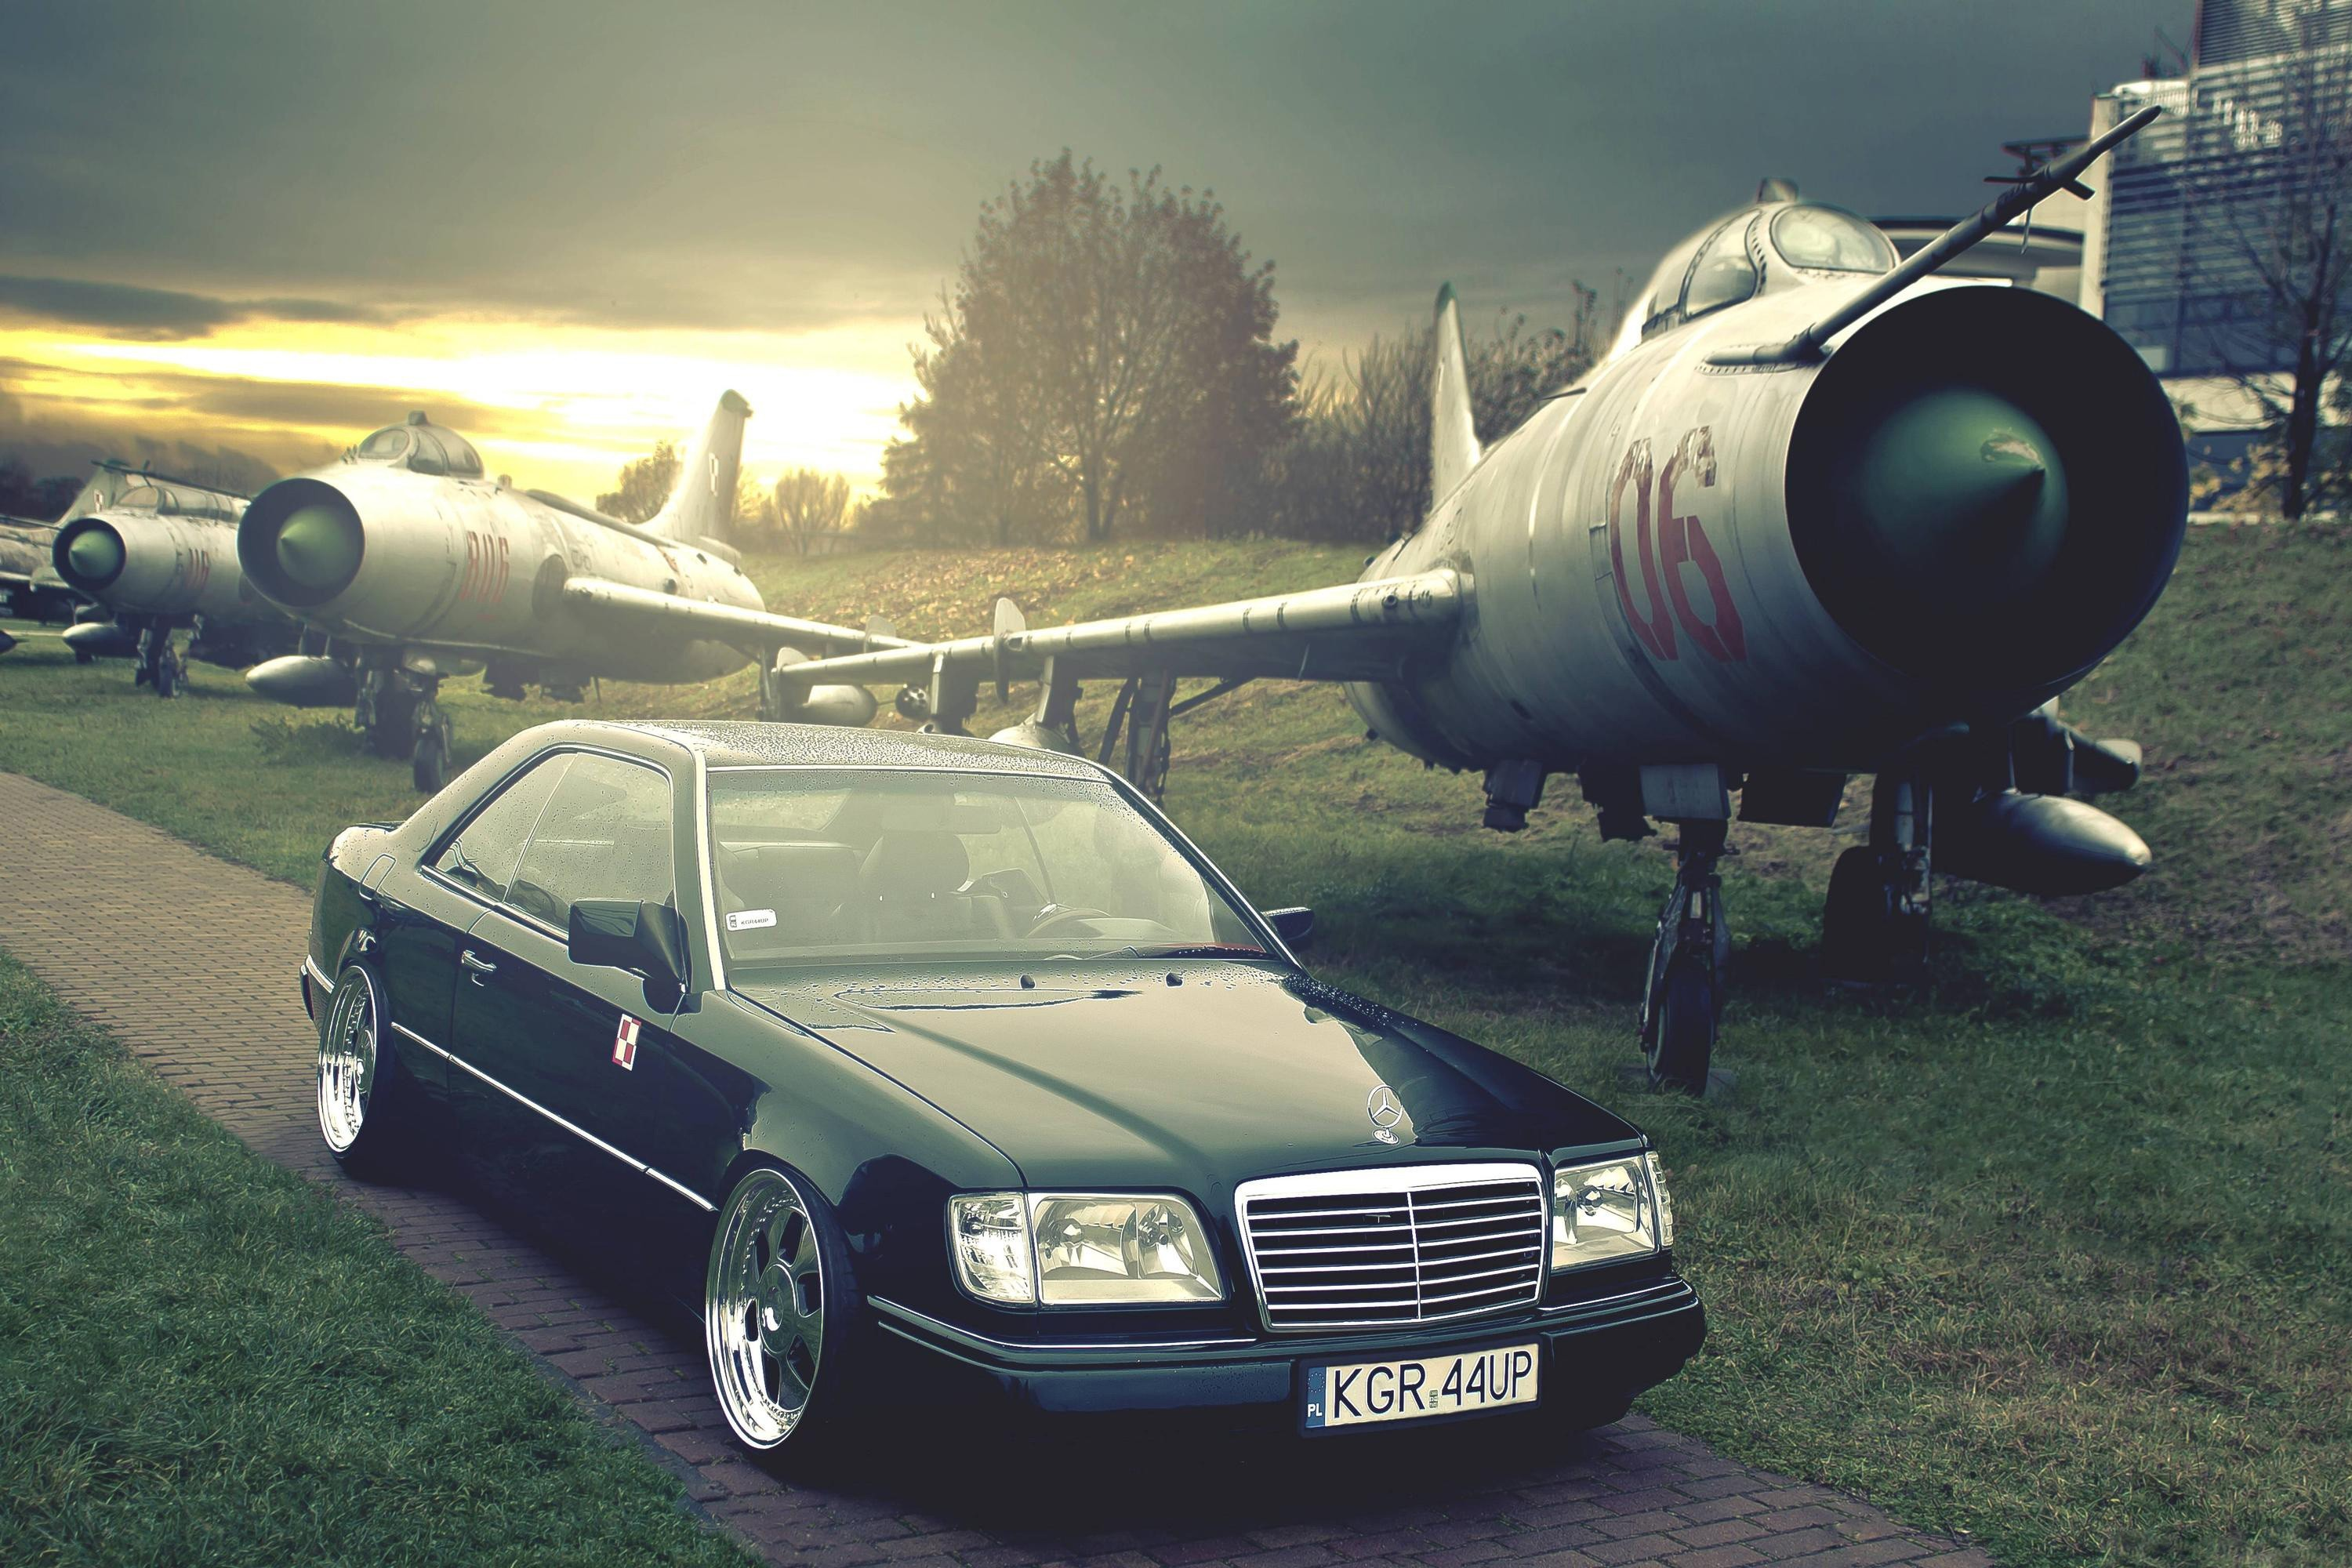 Iphone X Perspective Wallpaper Size Mercedes Benz Hd Wallpaper Background Image 3000x2000